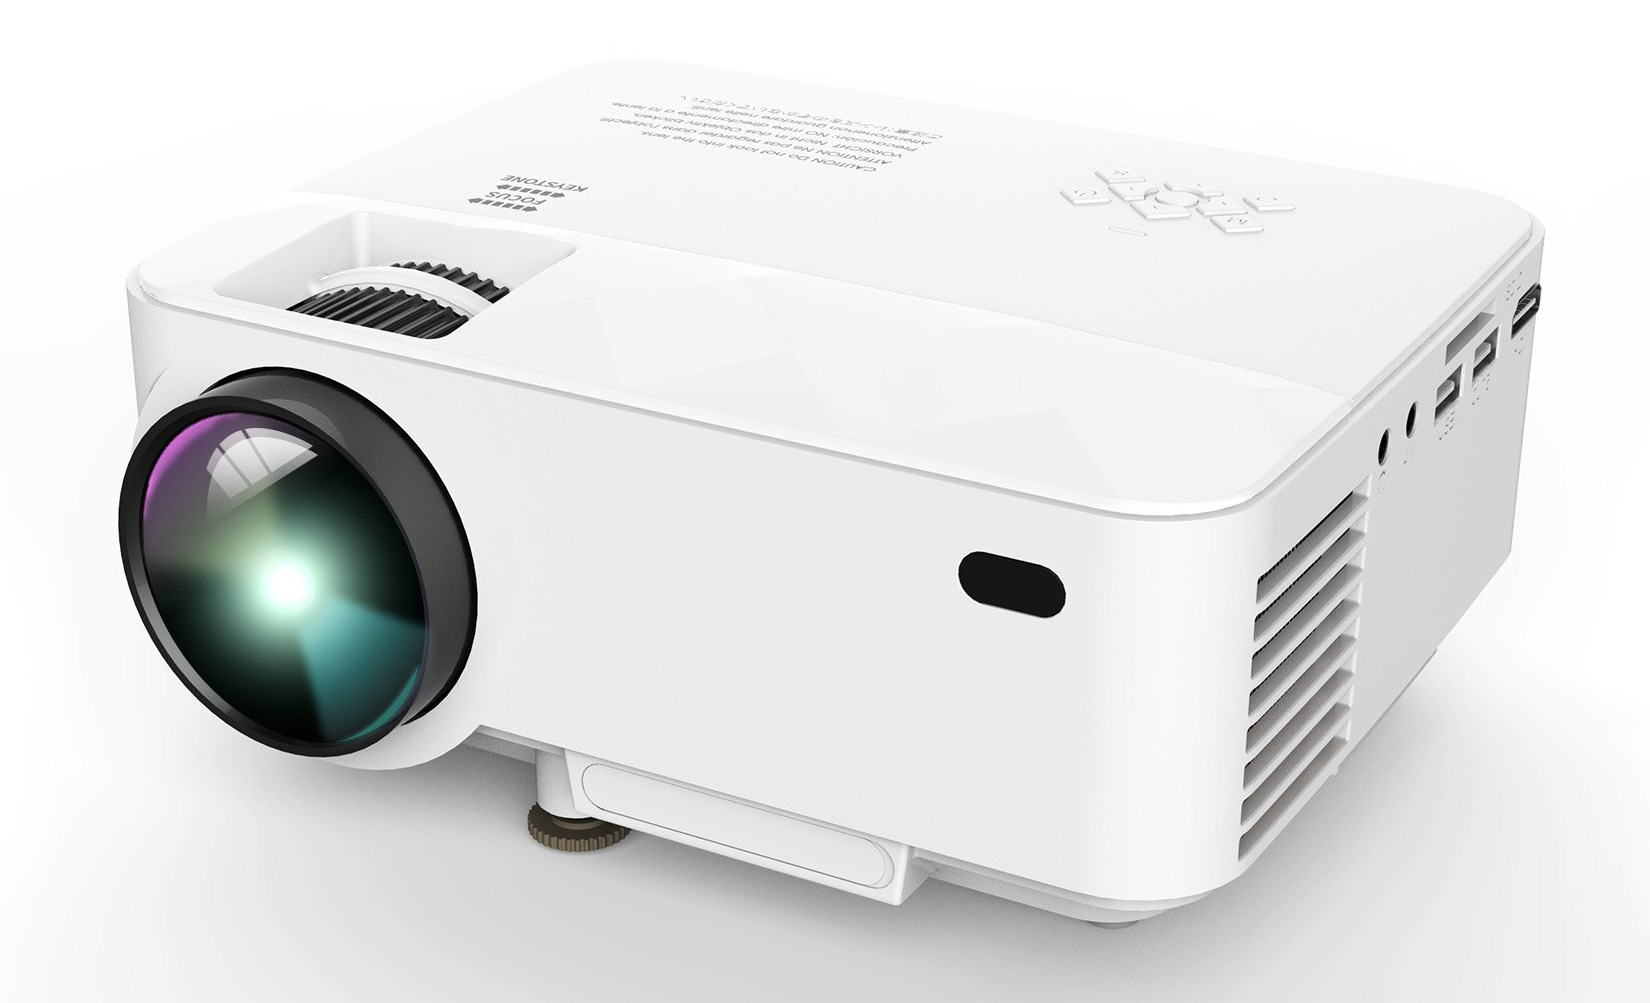 Dbpower t20 portable mini led projector review for Miniature projector